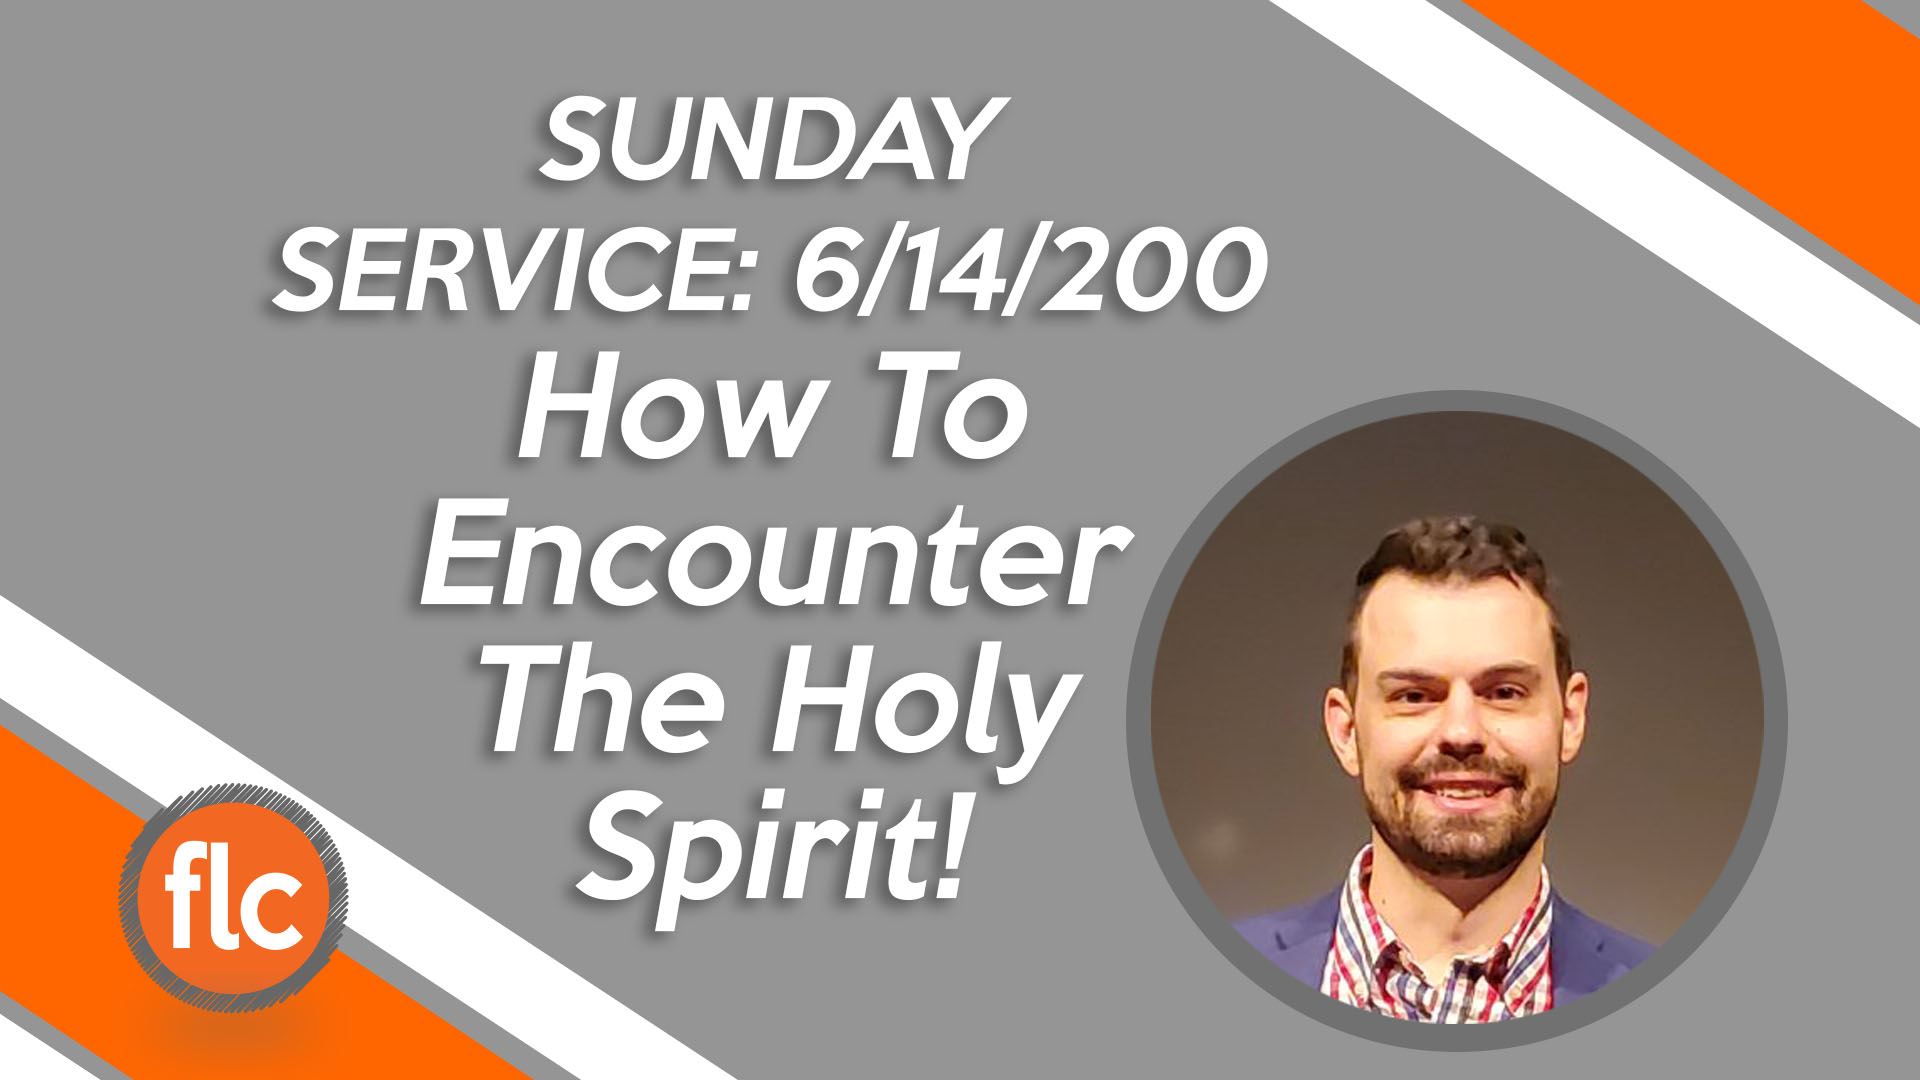 How to Encounter The Holy Spirit